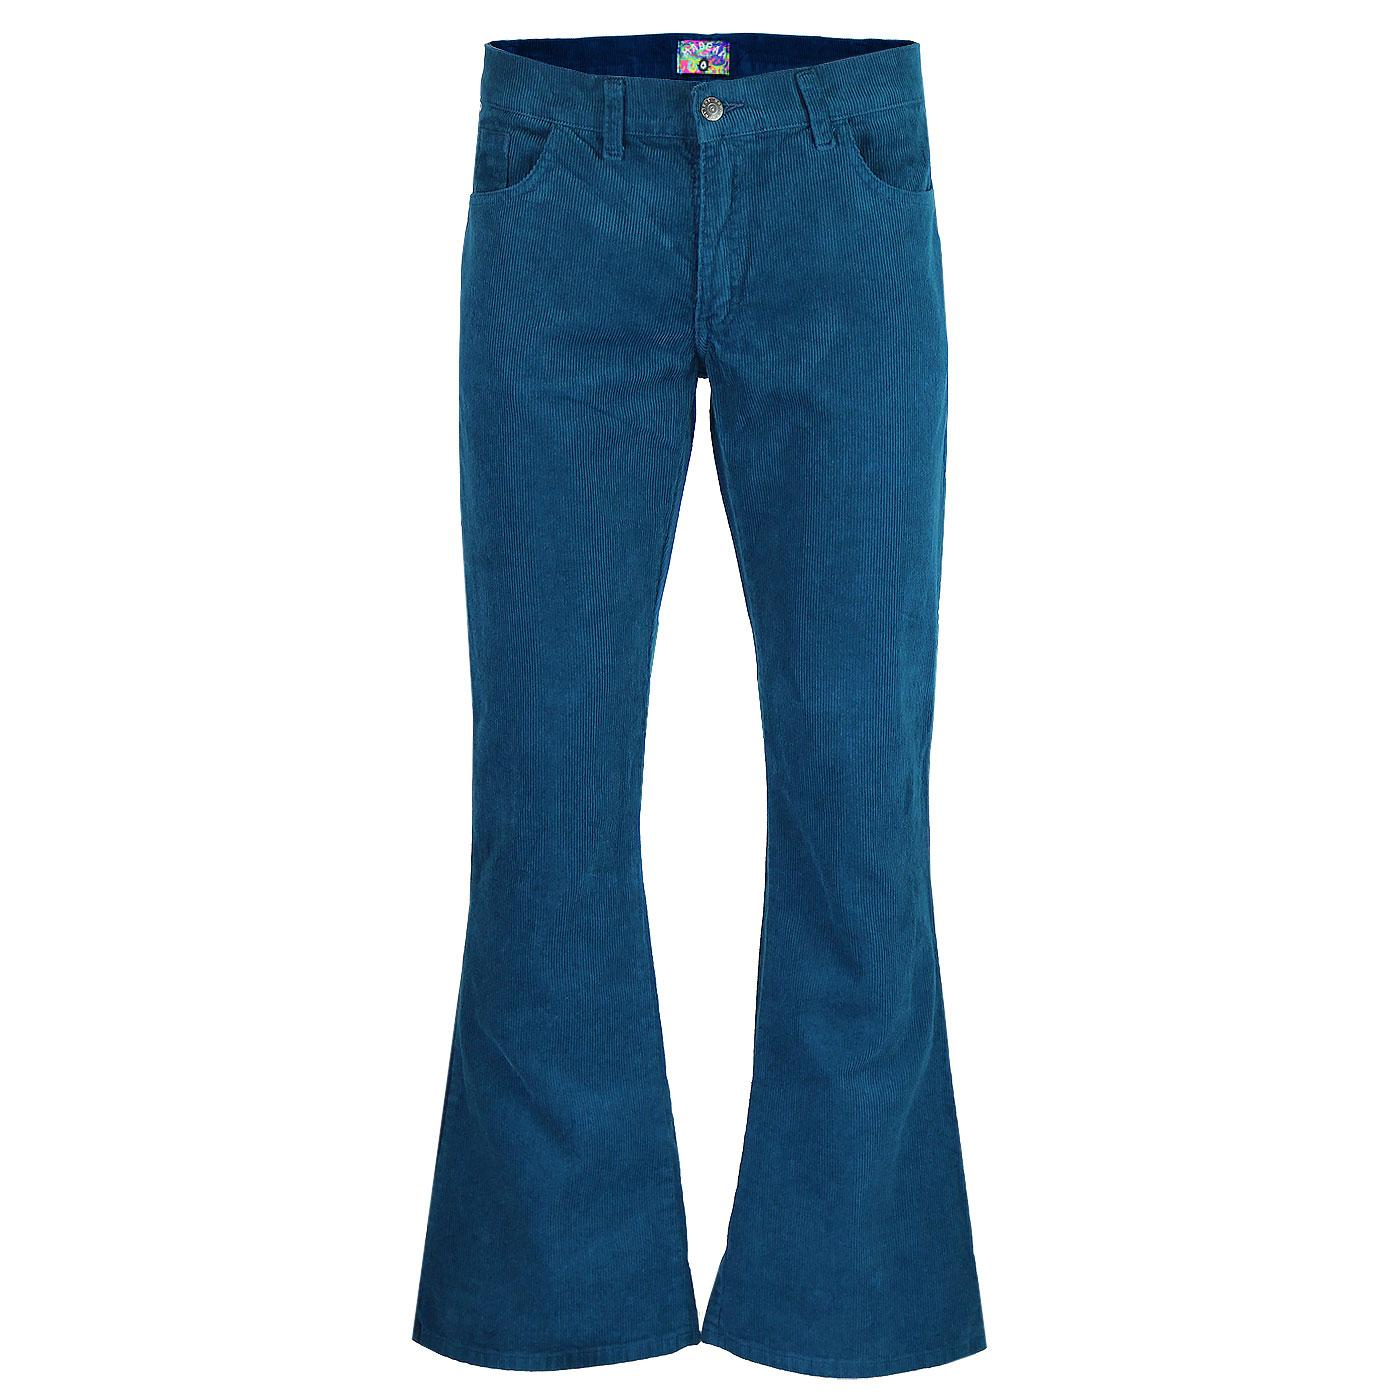 Madcap England Killer Men's Retro 1970s Cord Flares in Ink Blue